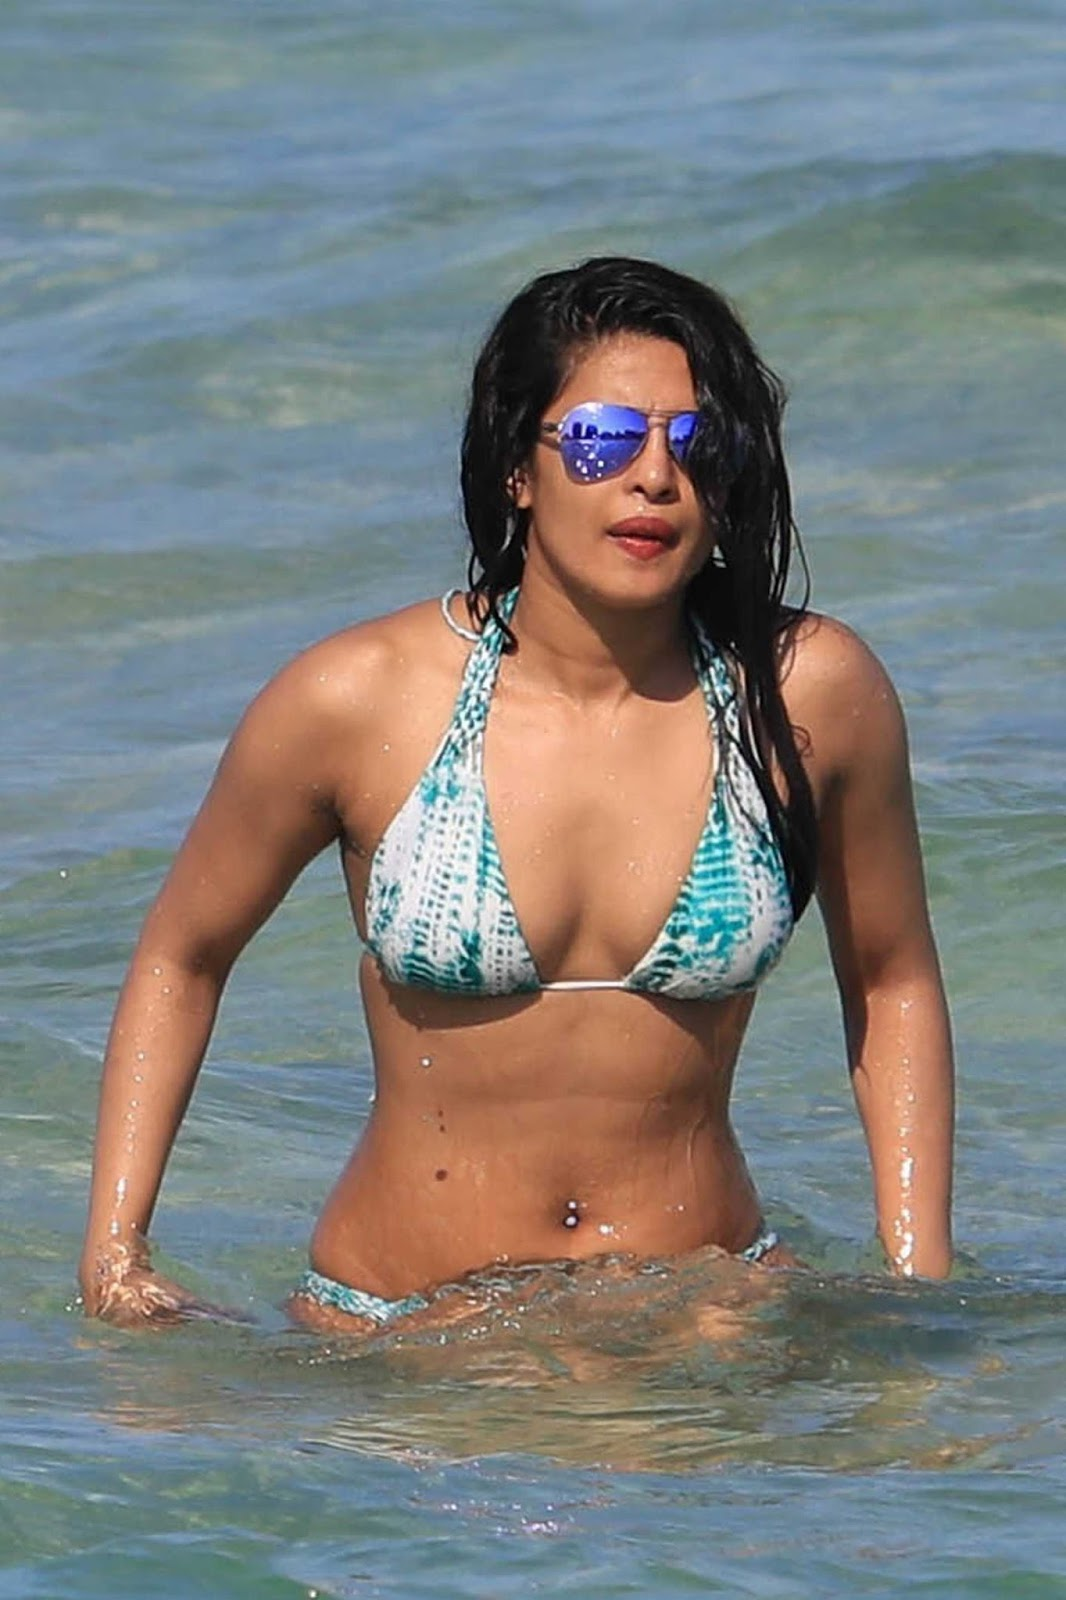 Priyanka Chopra Hot Sexy Bikini Photos